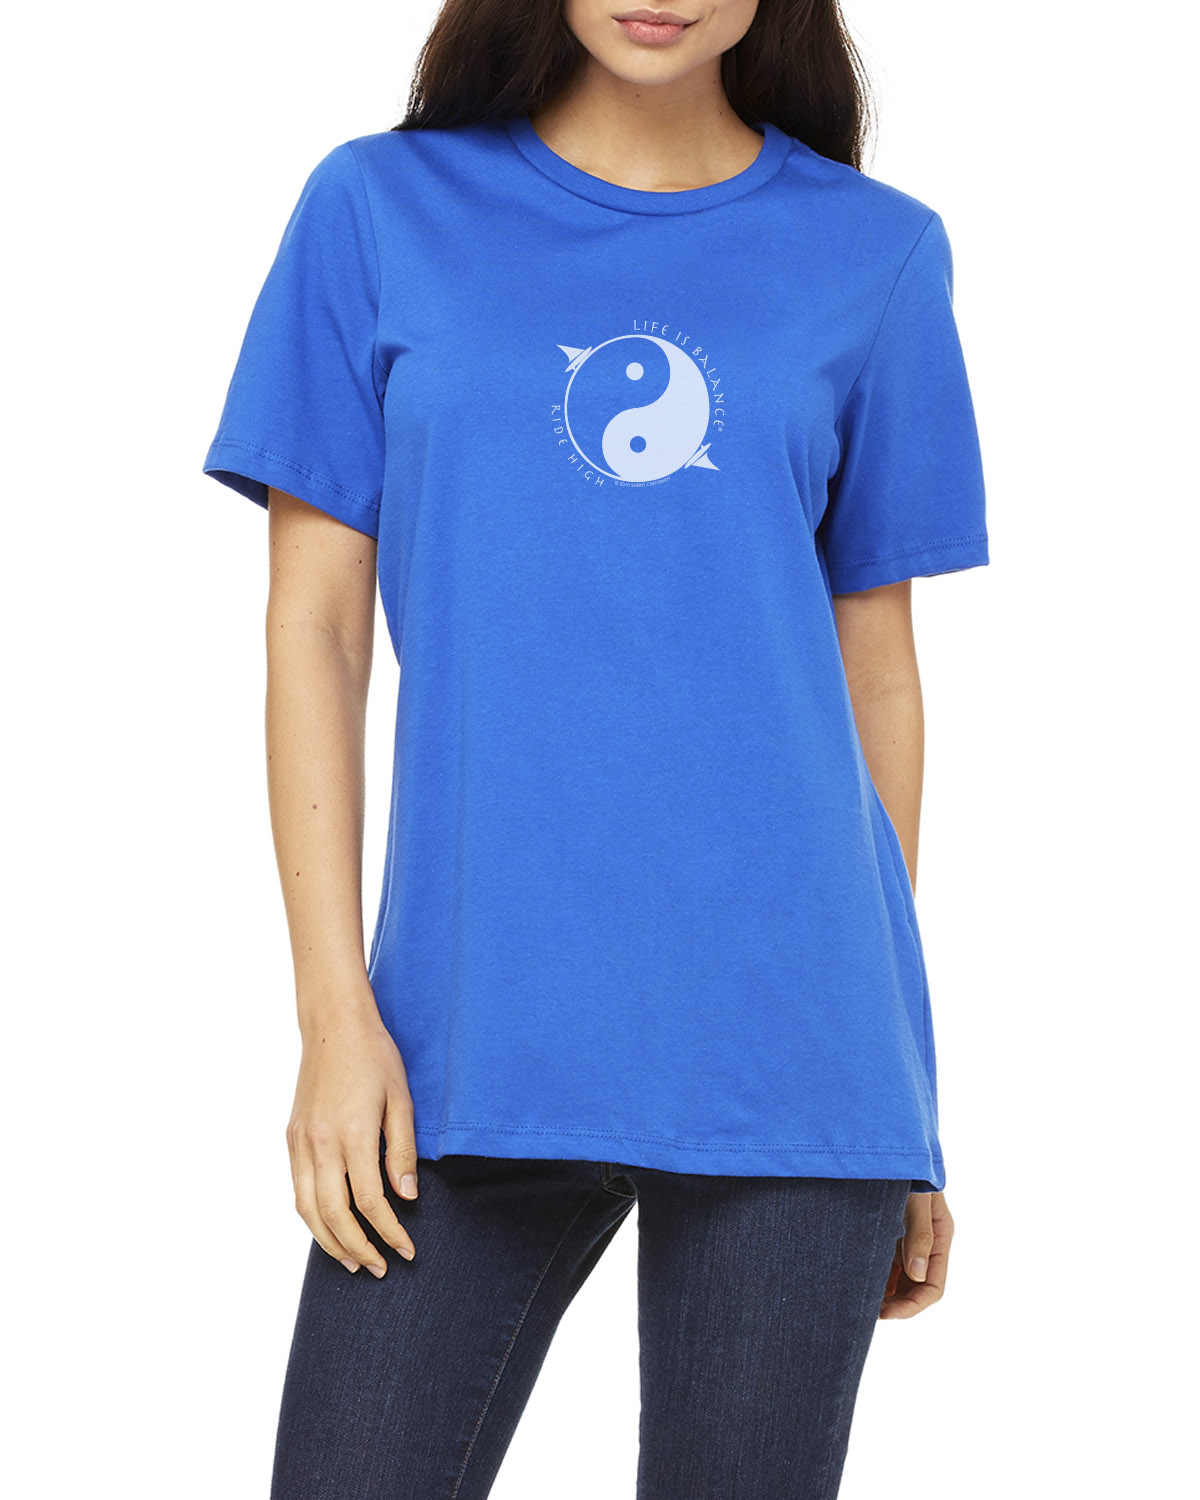 Women's short sleeve windsurfing t-shirt (royal)